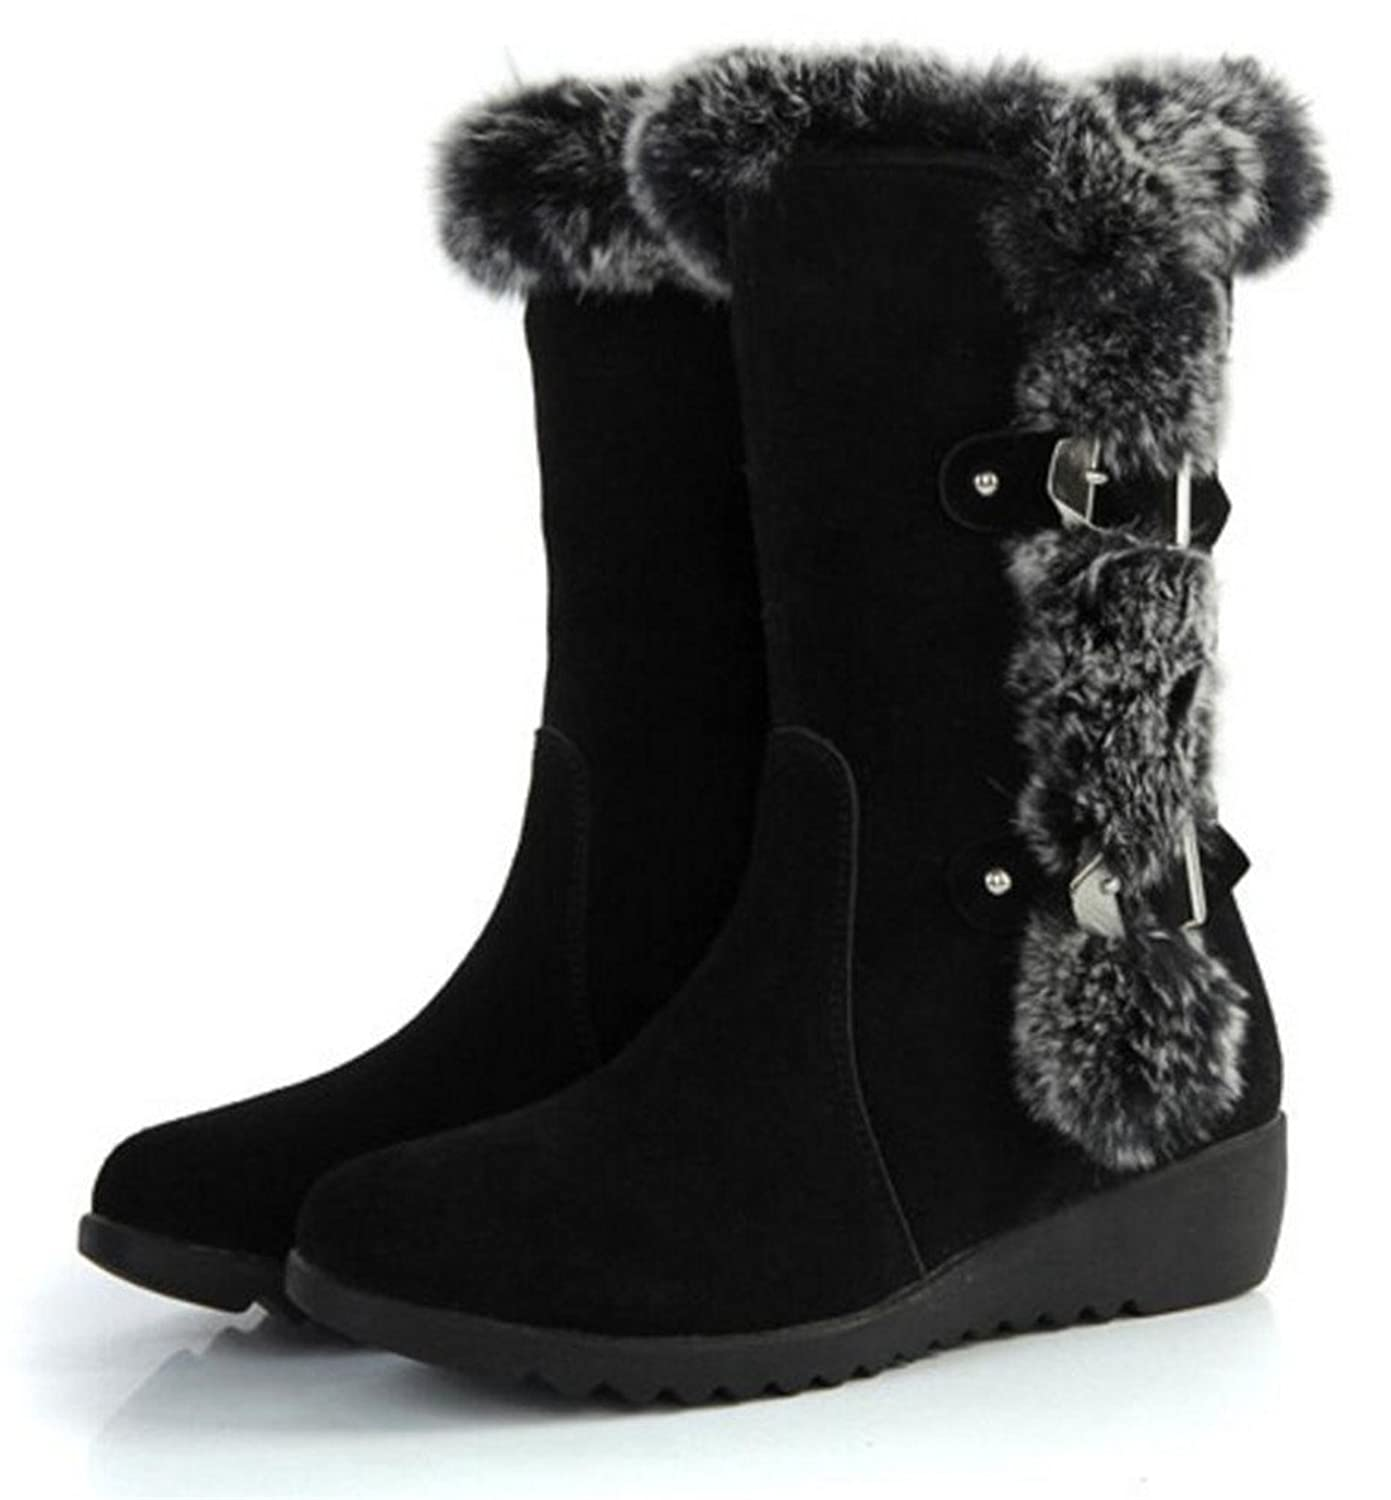 ACE SHOCK Women's Winter Mid Calf Rabbit Faux Fur Casual Snow Boots Shoes